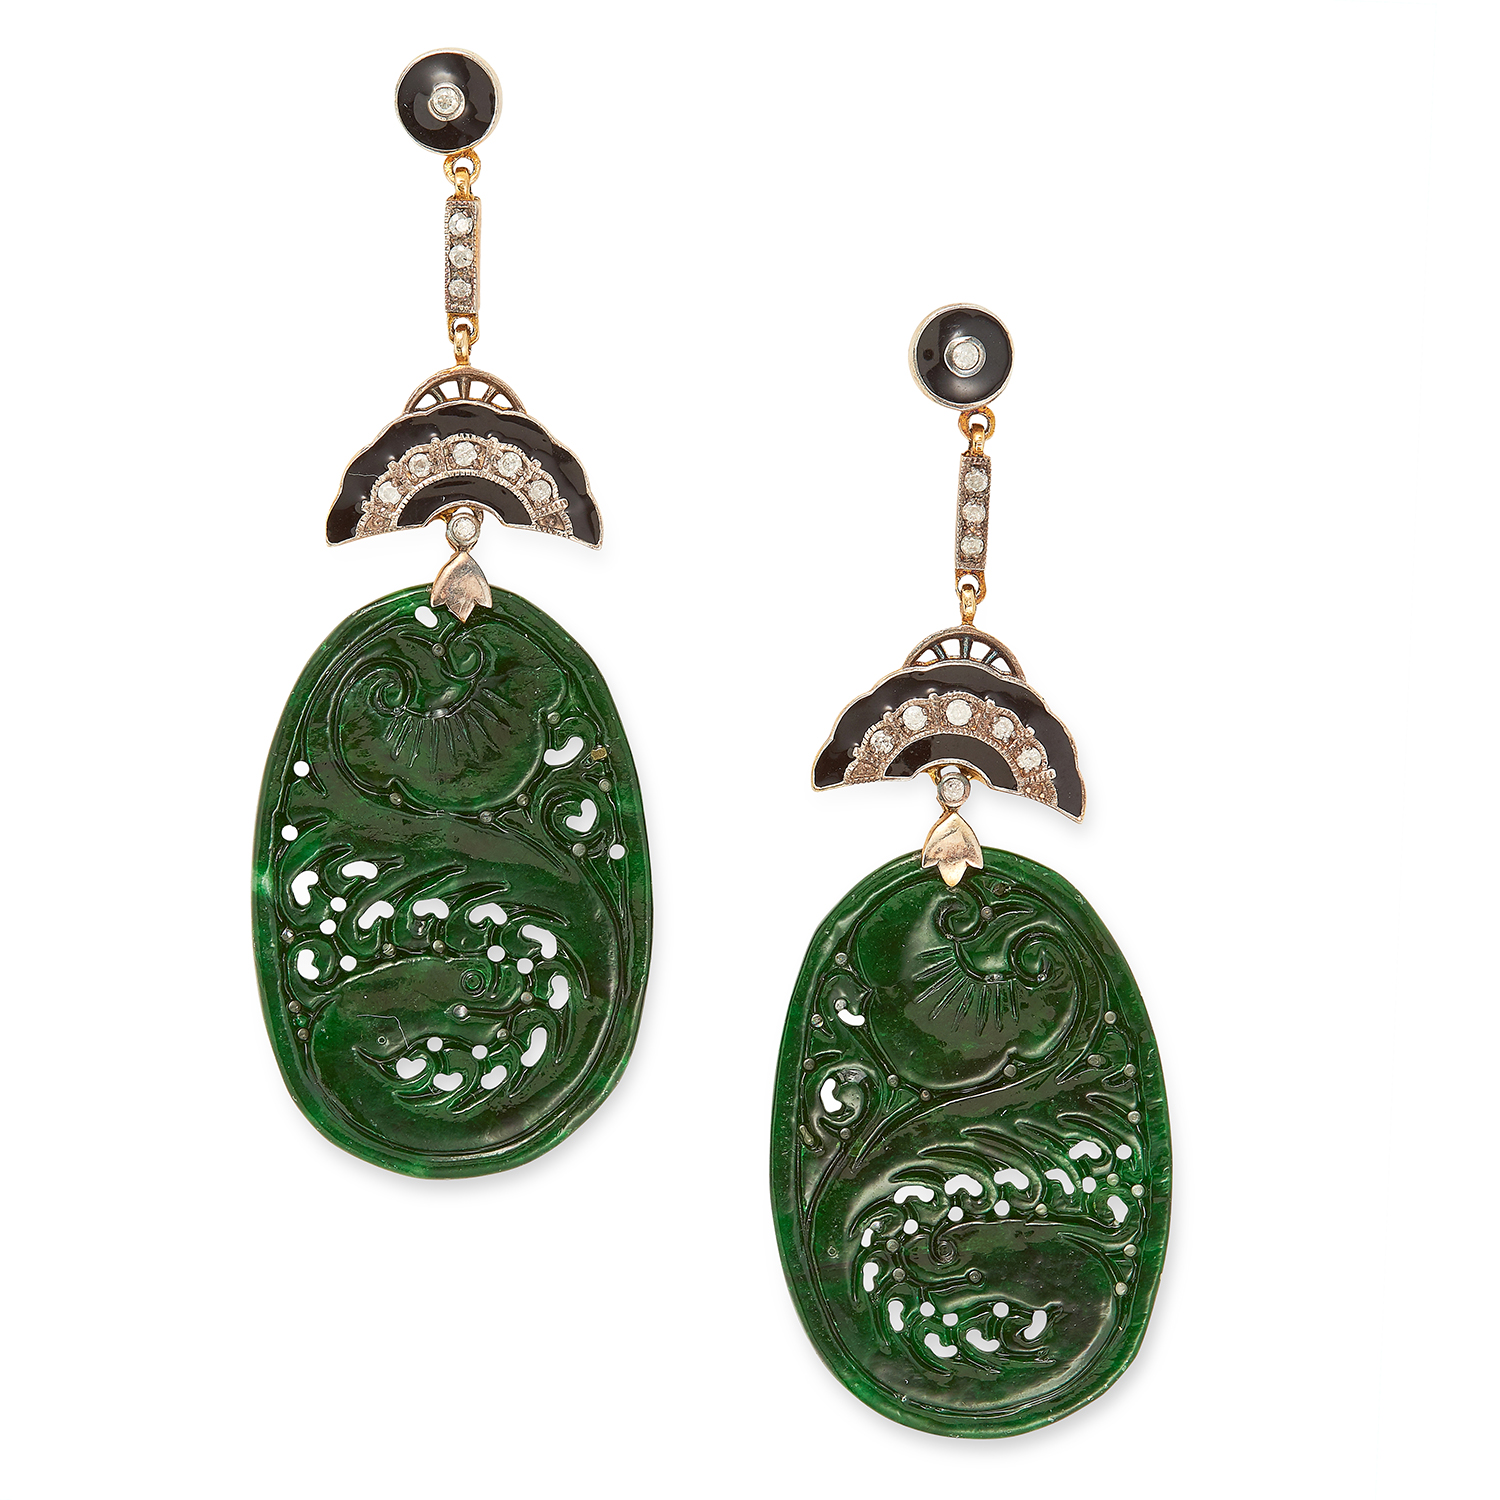 JADE, ONYX AND DIAMOND EARRINGS in Art Deco design set with carved jade plaques, round cut